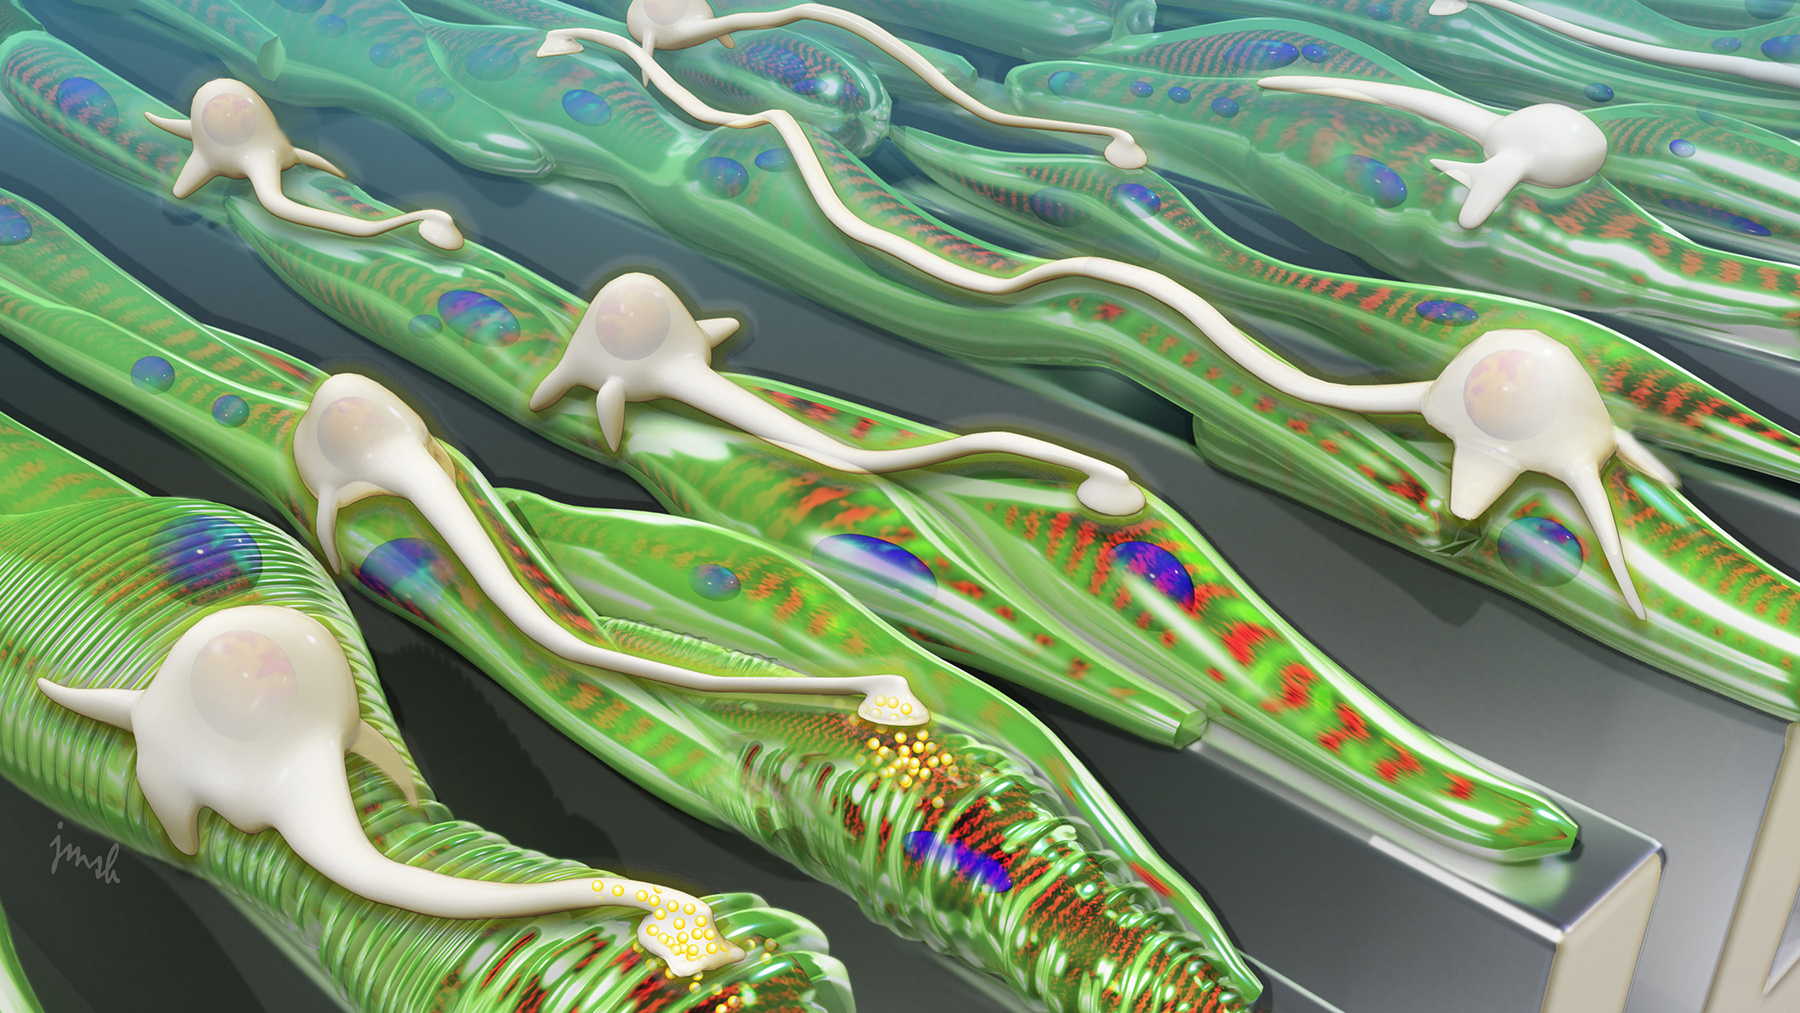 artist's rendering showing grooved surfaces help muscle grow into aligned fibers, which provides a track for neurons to follow